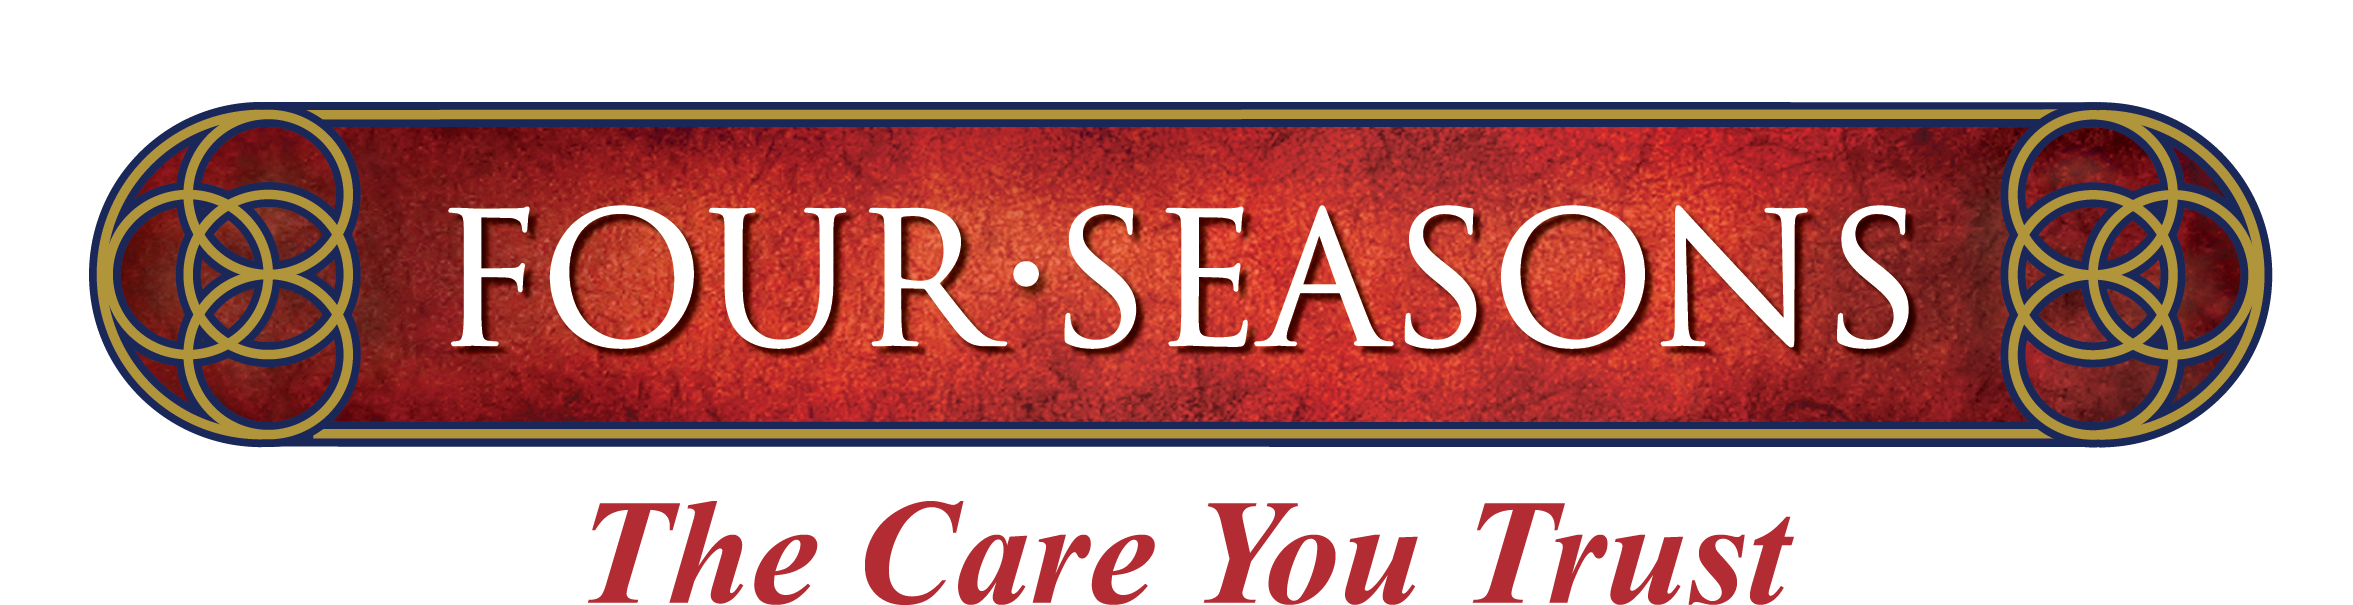 Four Seasons The Care You Trust logo Navy Thinner Rings